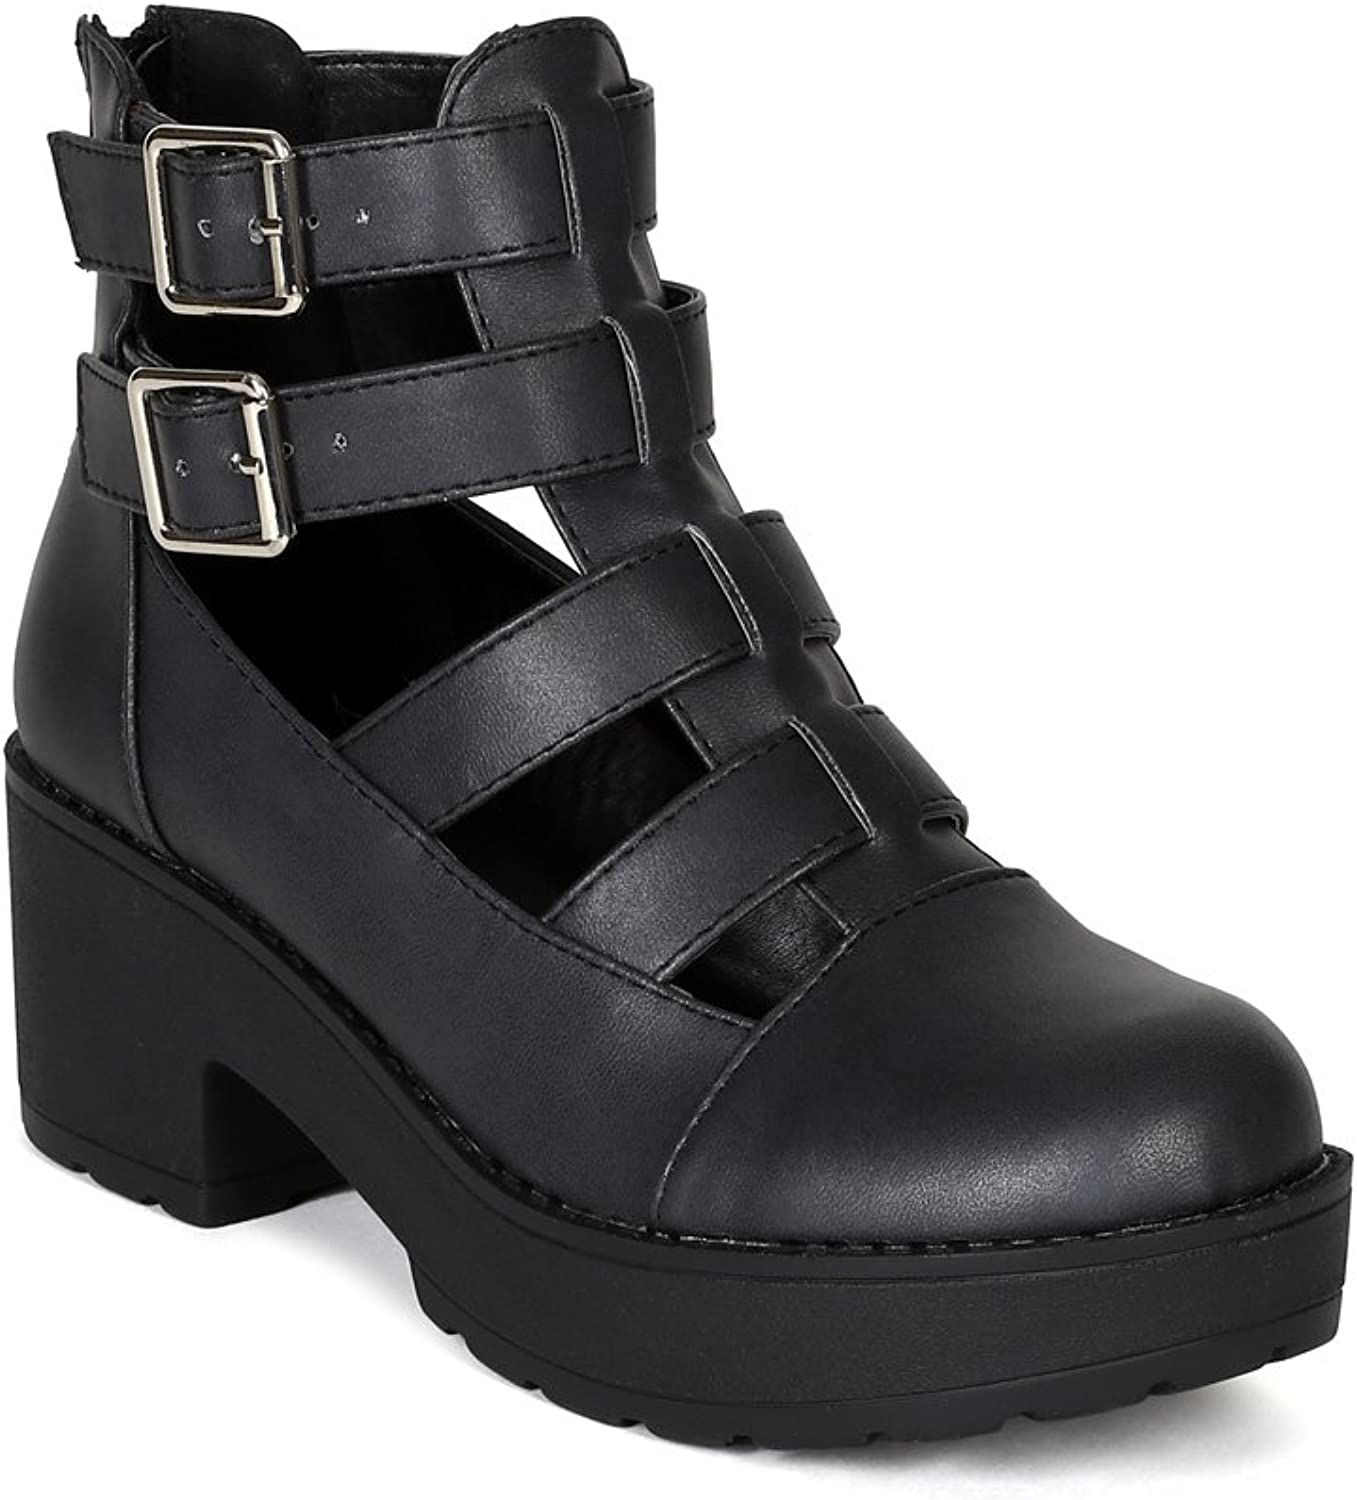 Qupid Selfie-01 Womens Faux Leather Gladiator Strappy Ankle Bootie